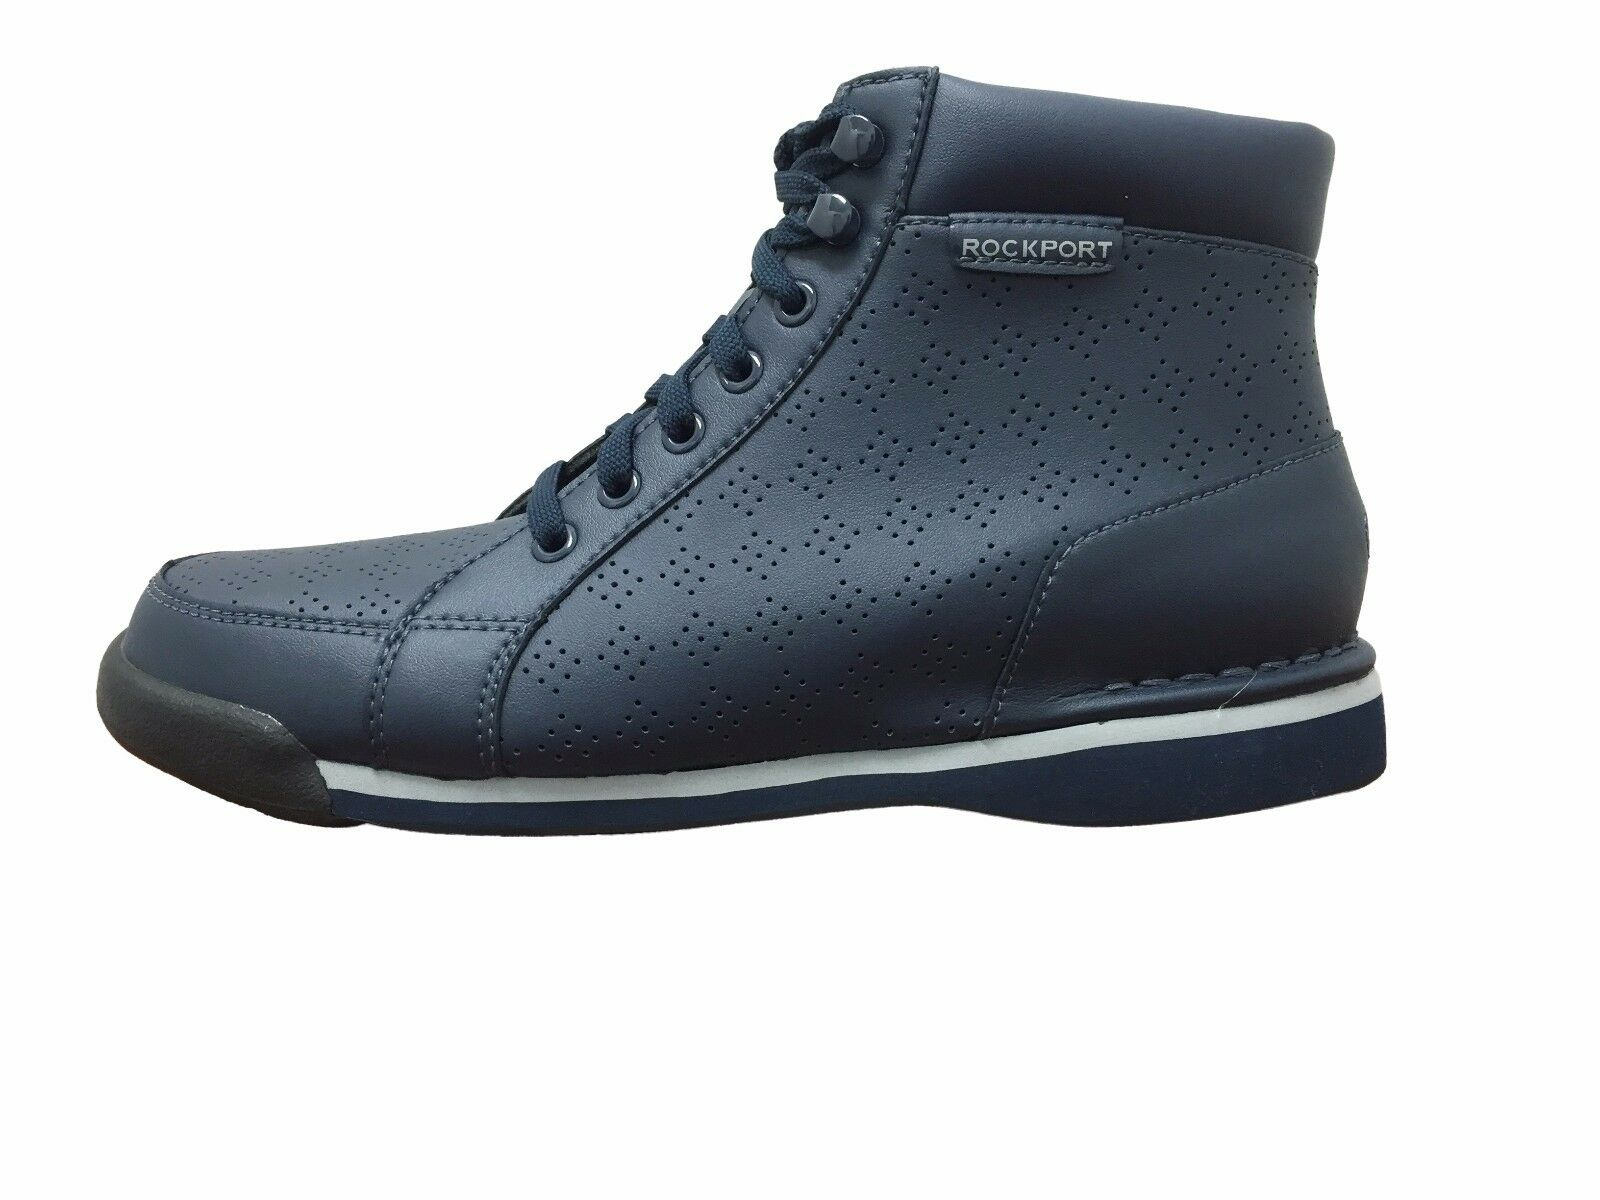 Rockport M7100 Boot Navy Perforated (V80126)